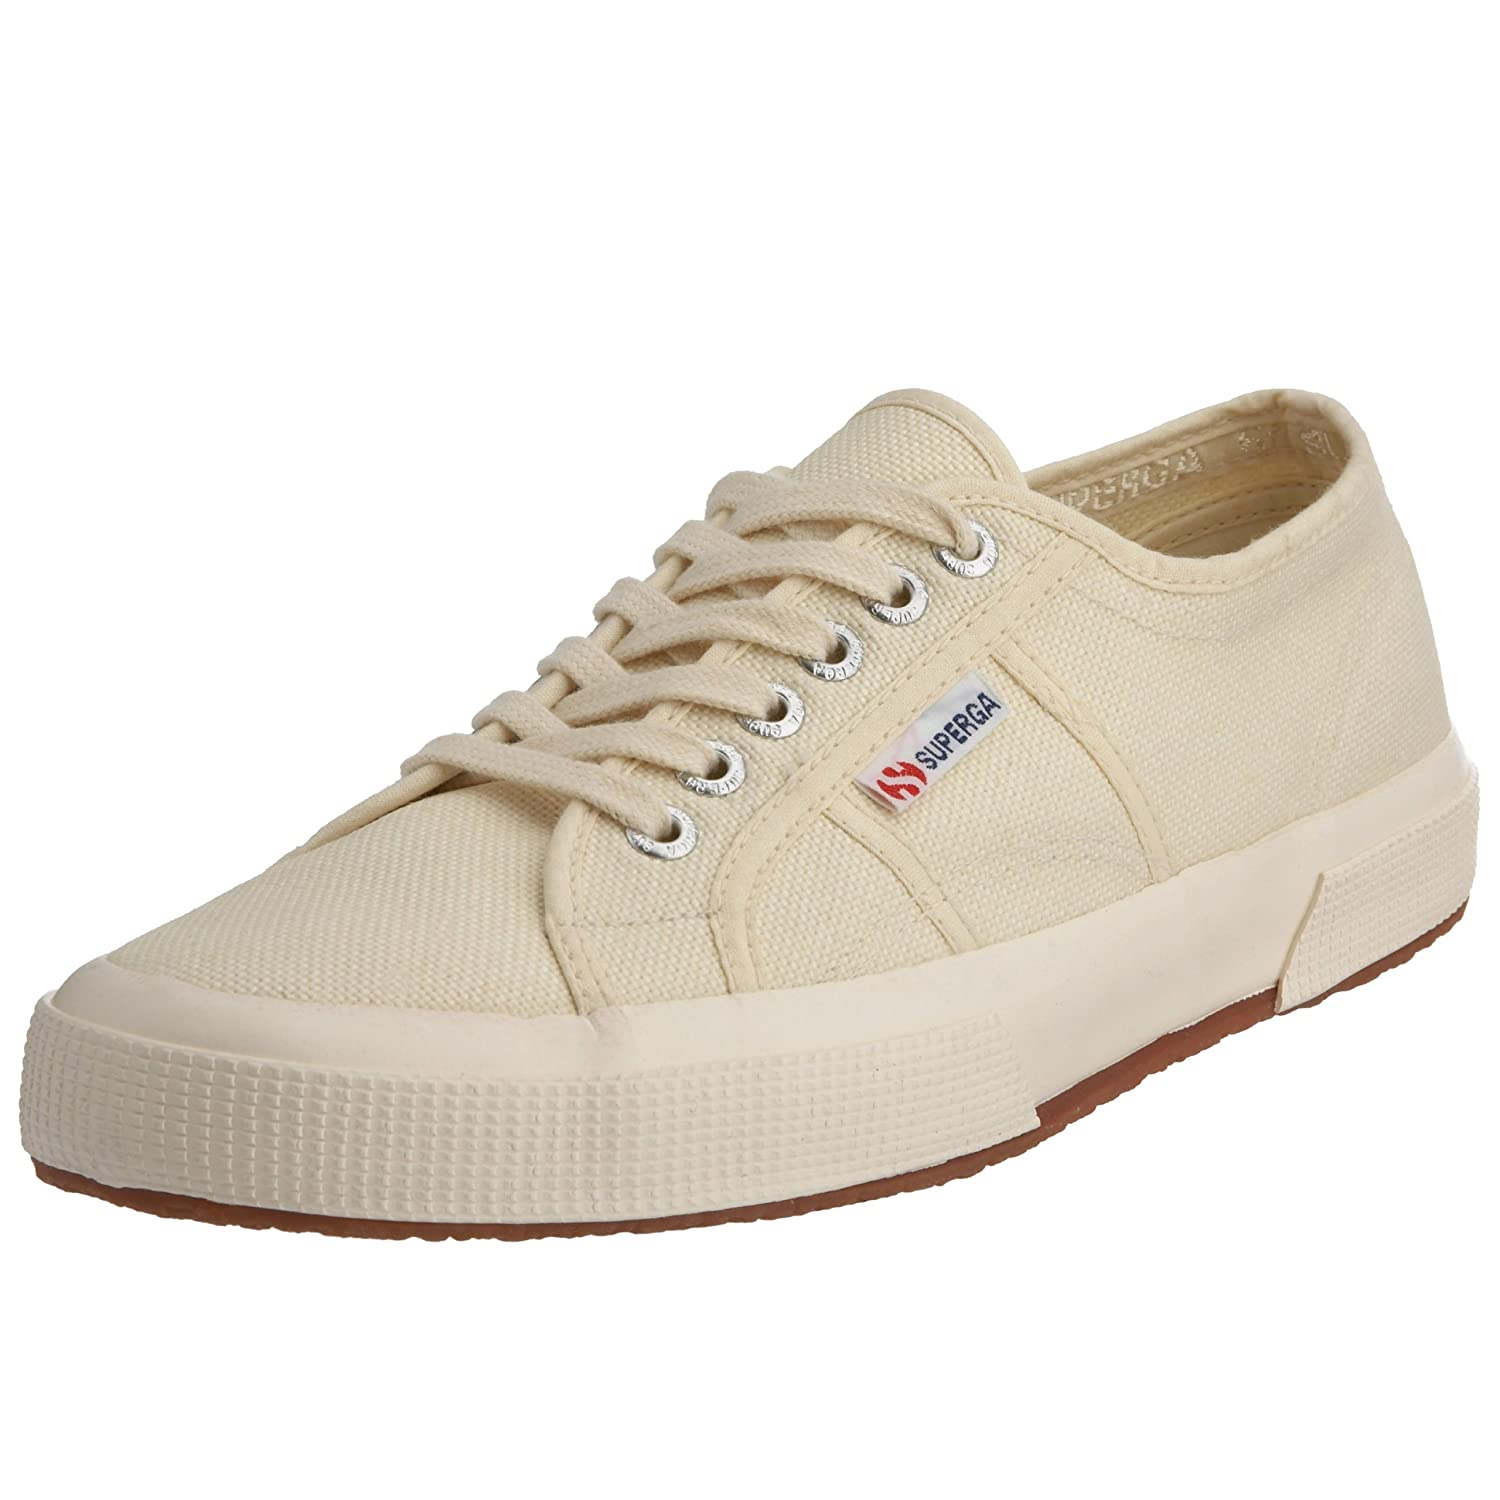 Superga Cotu 2750 Cotu mixte Classic, B07H7NH747 Baskets mixte adulte Ivoire (Ecru) 19d02c4 - piero.space